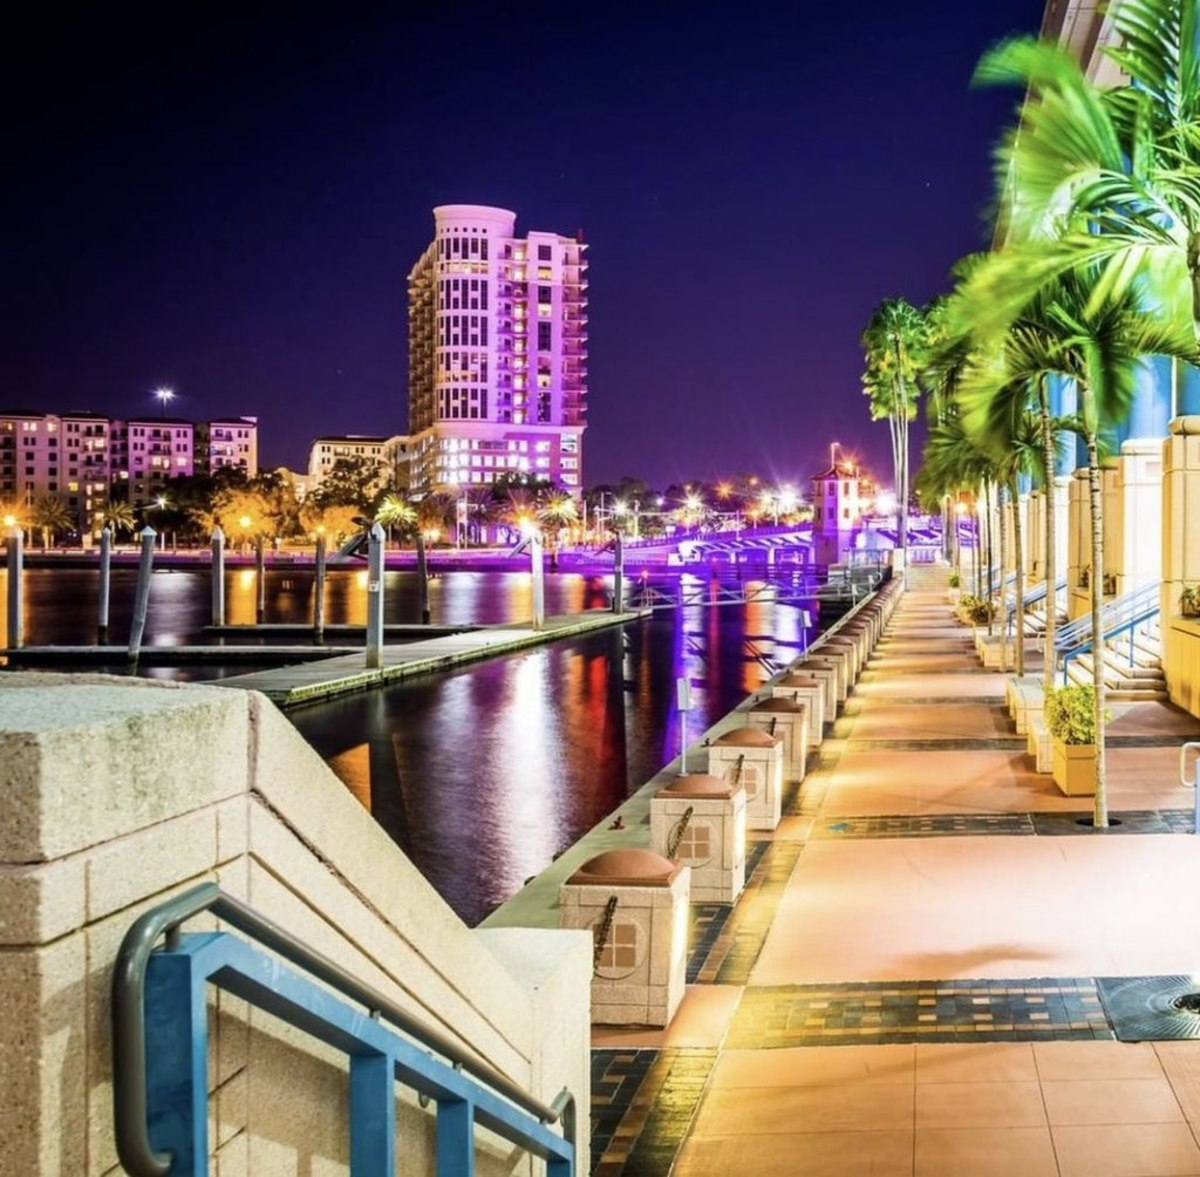 The Tampa Riverwalk near the mouth of the Hillsborough River, not far from the Tampa Convention Center.